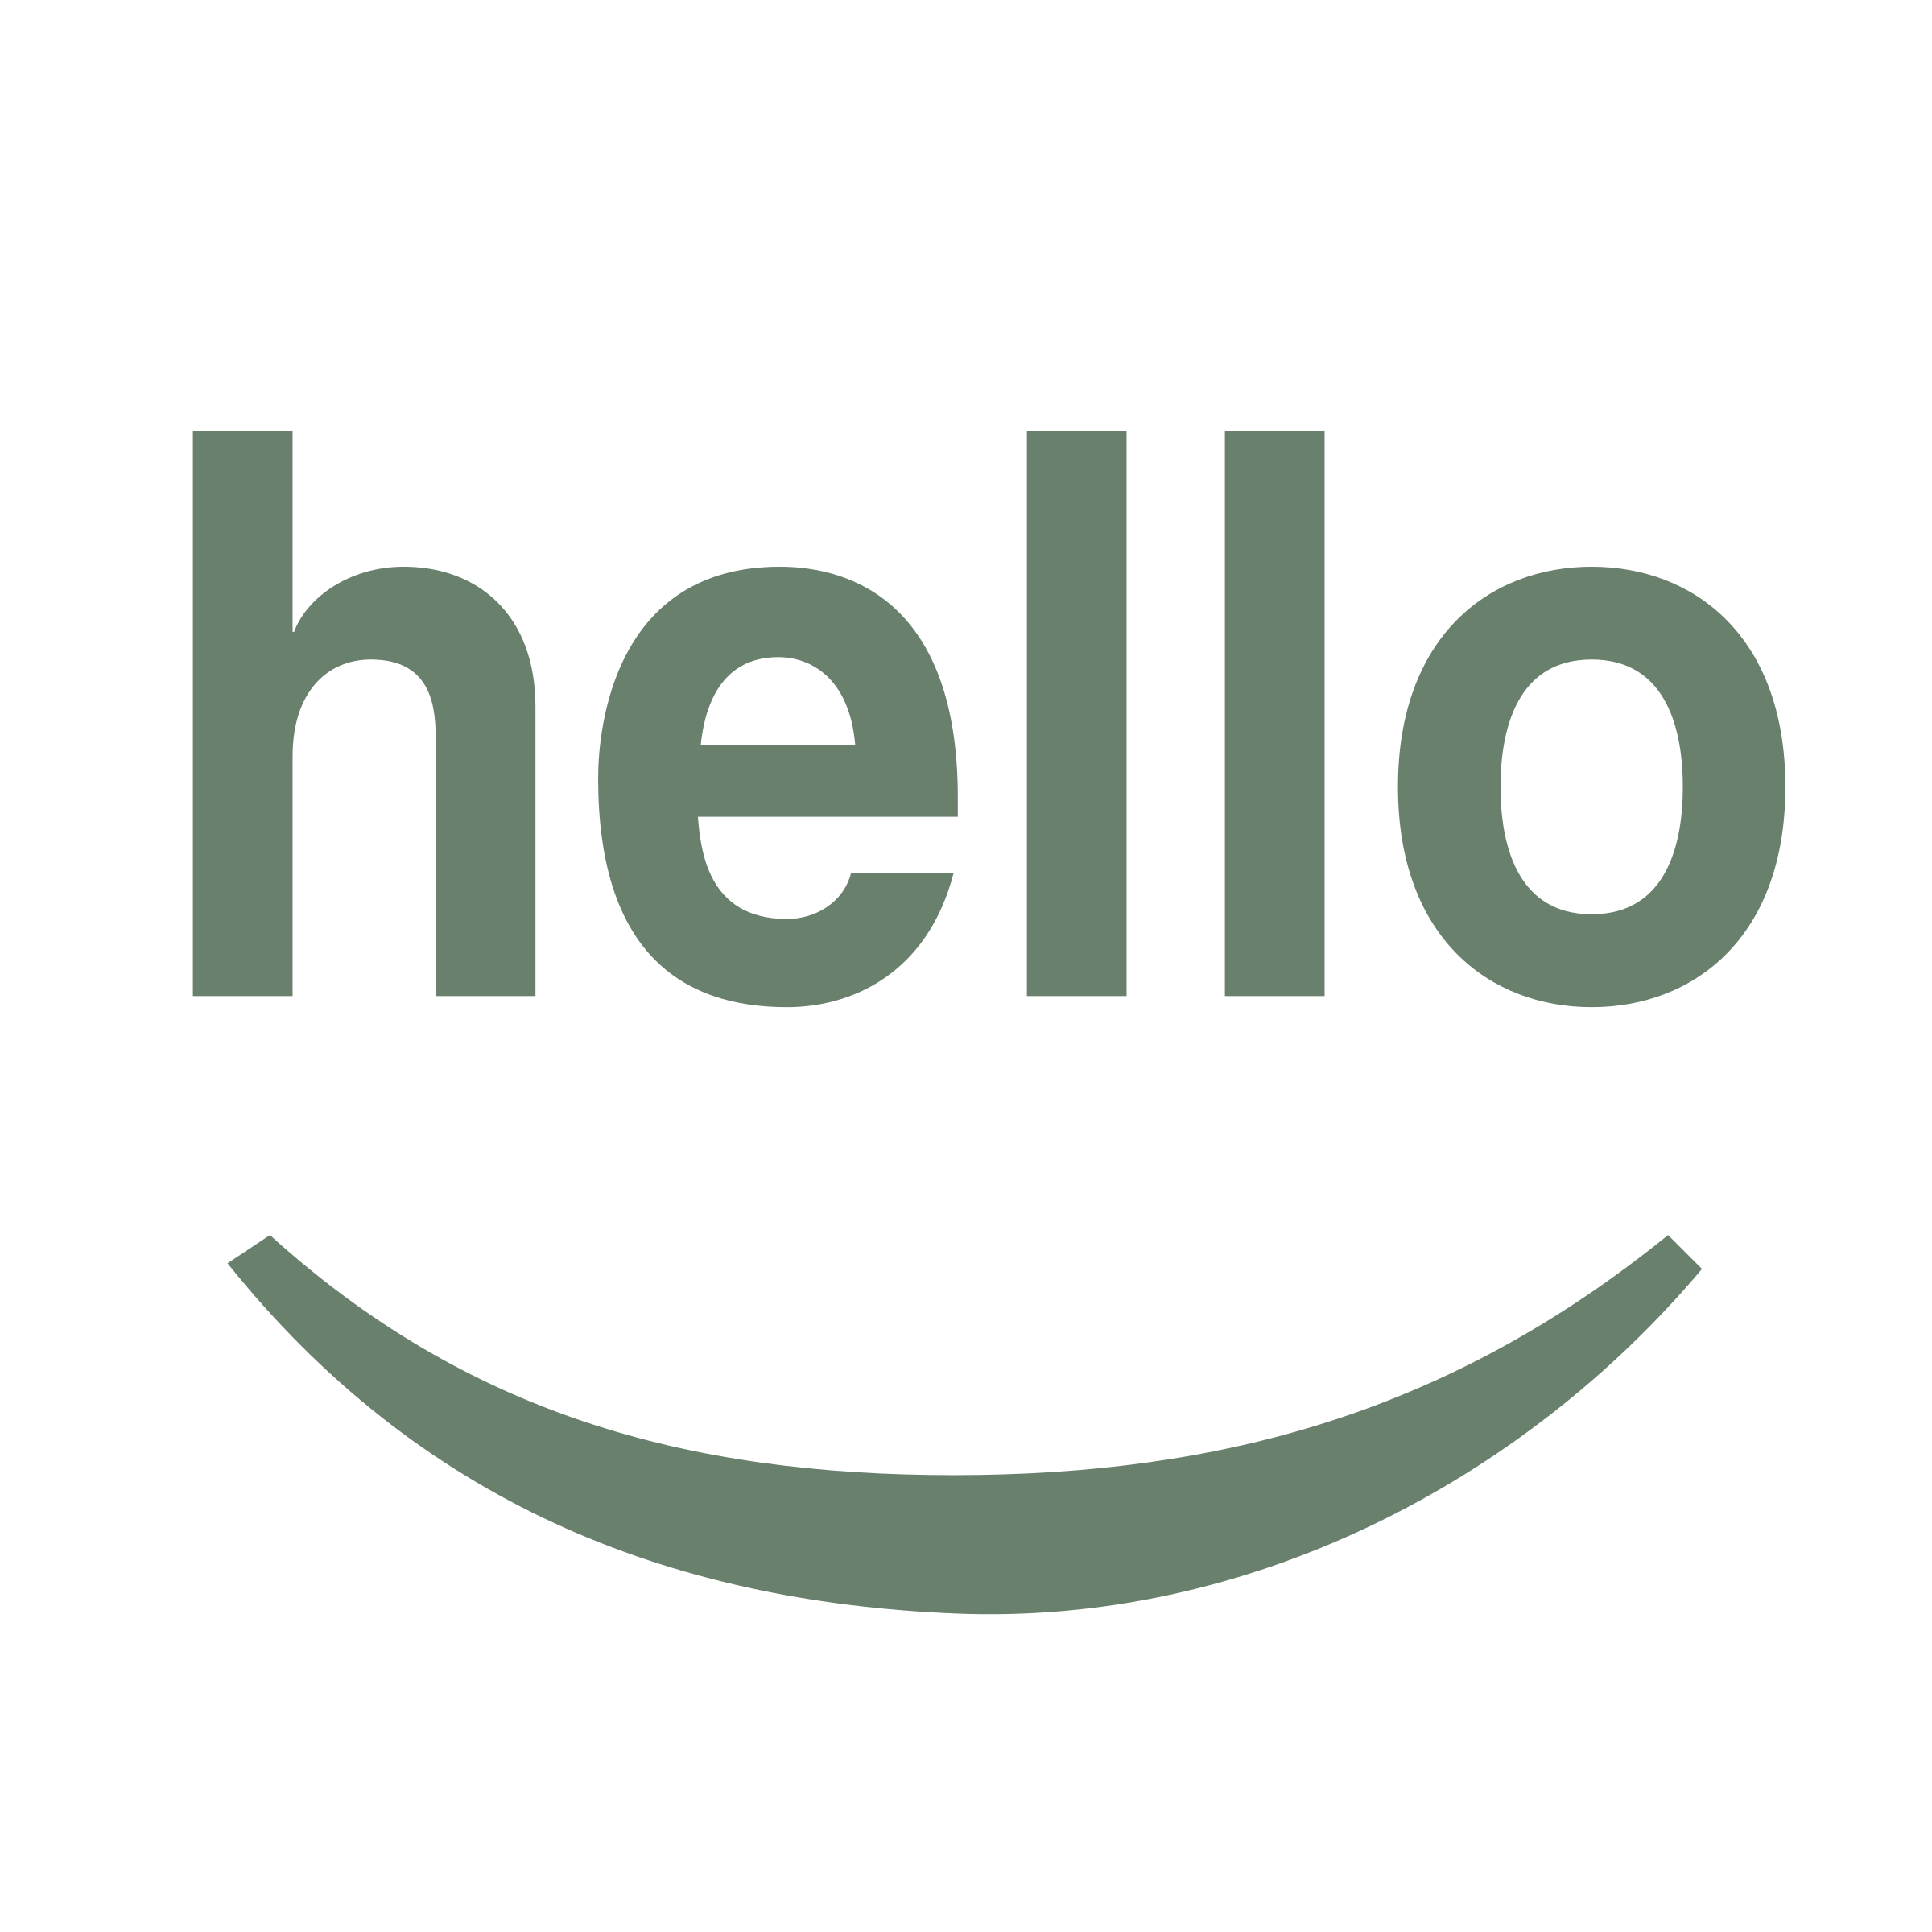 Hello Design Logo PNG Transparent & SVG Vector.